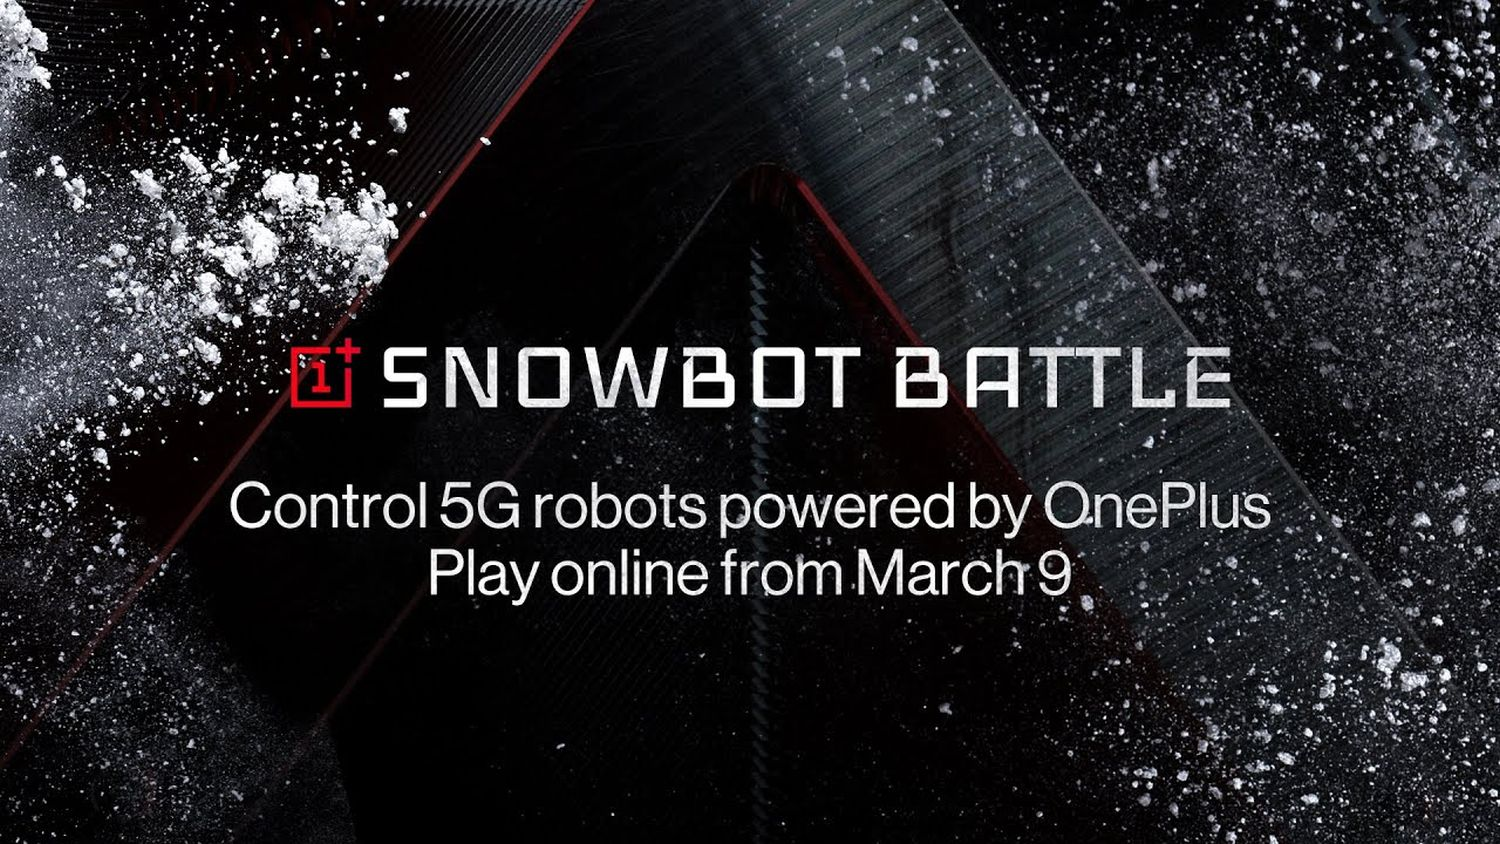 oneplus snowbot battle livestream youtube